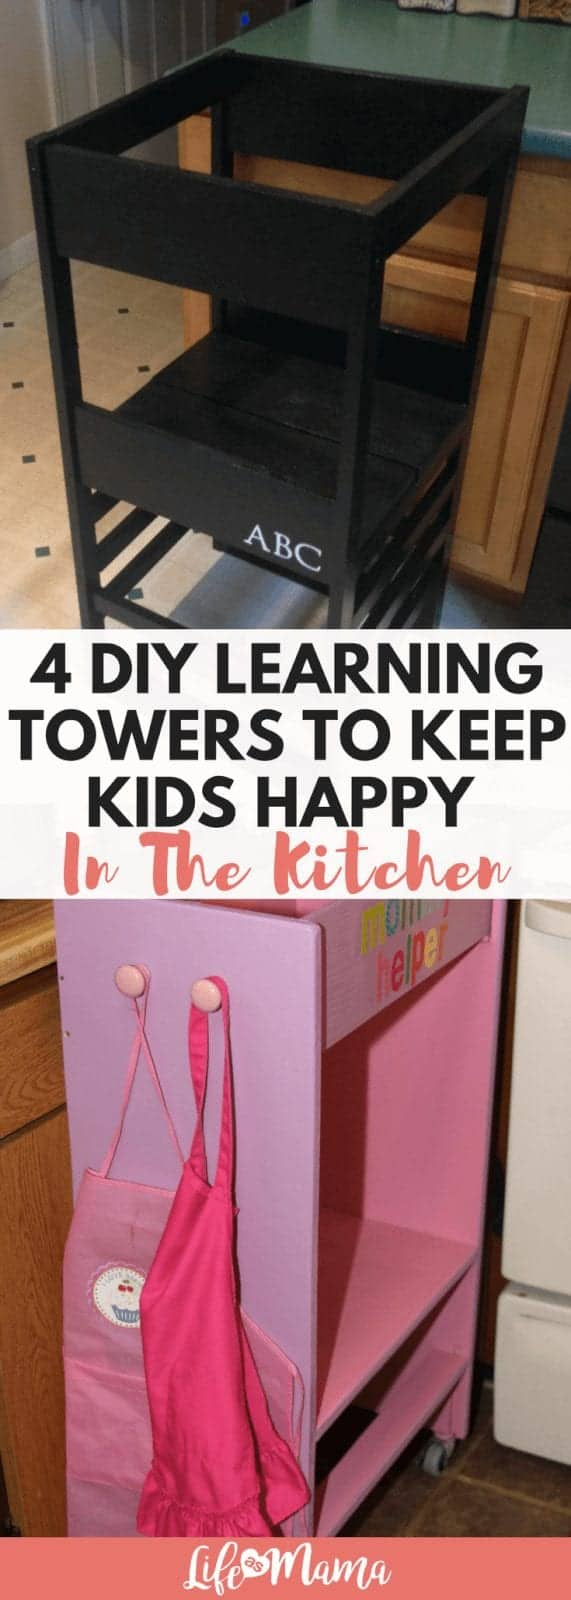 learning towers